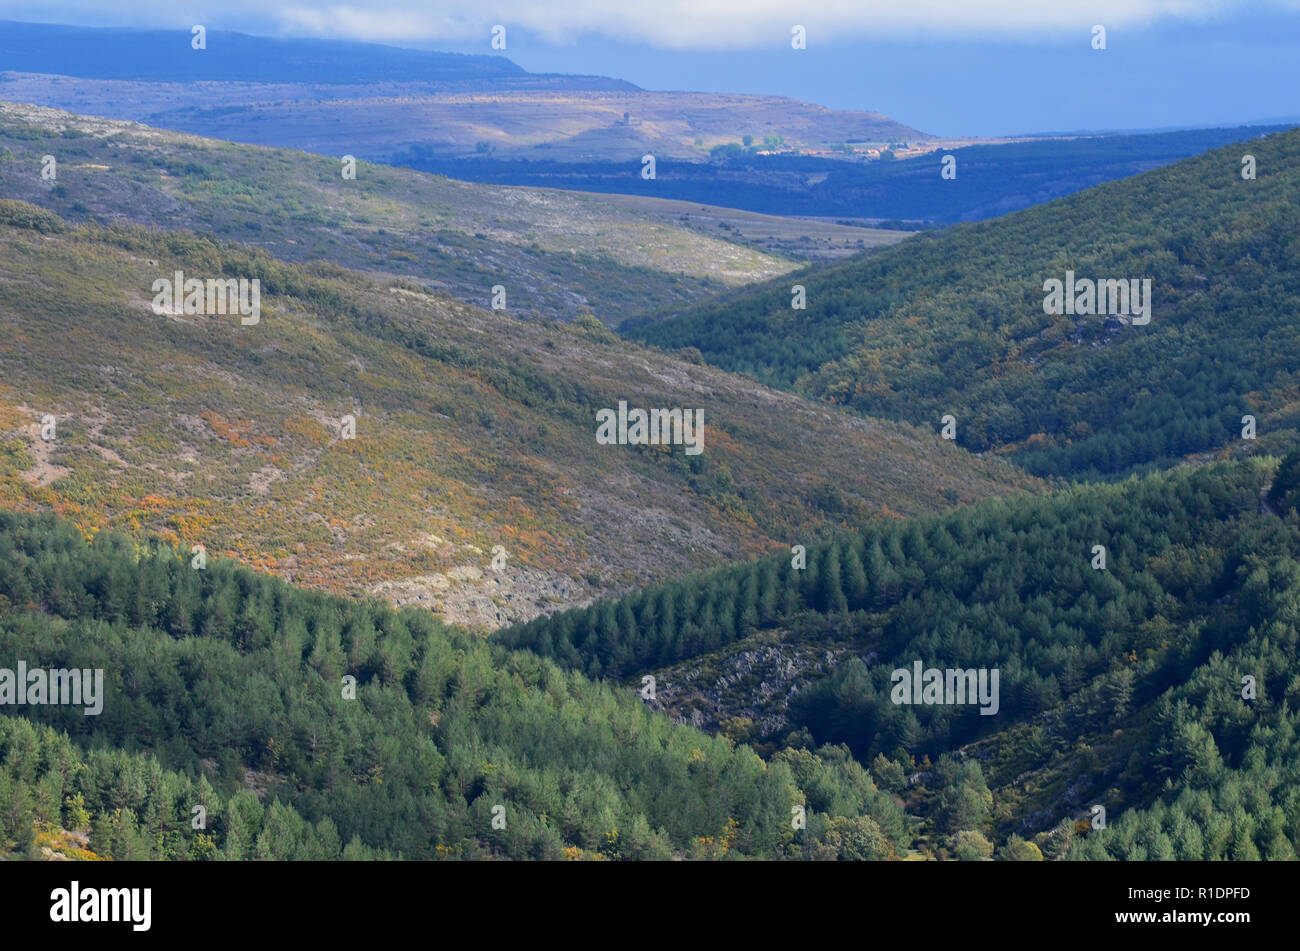 View of a large-scale pine afforestation replacing the original oak forest in the Tejera Negra Natural Reserve, Guadalajara province, central Spain - Stock Image